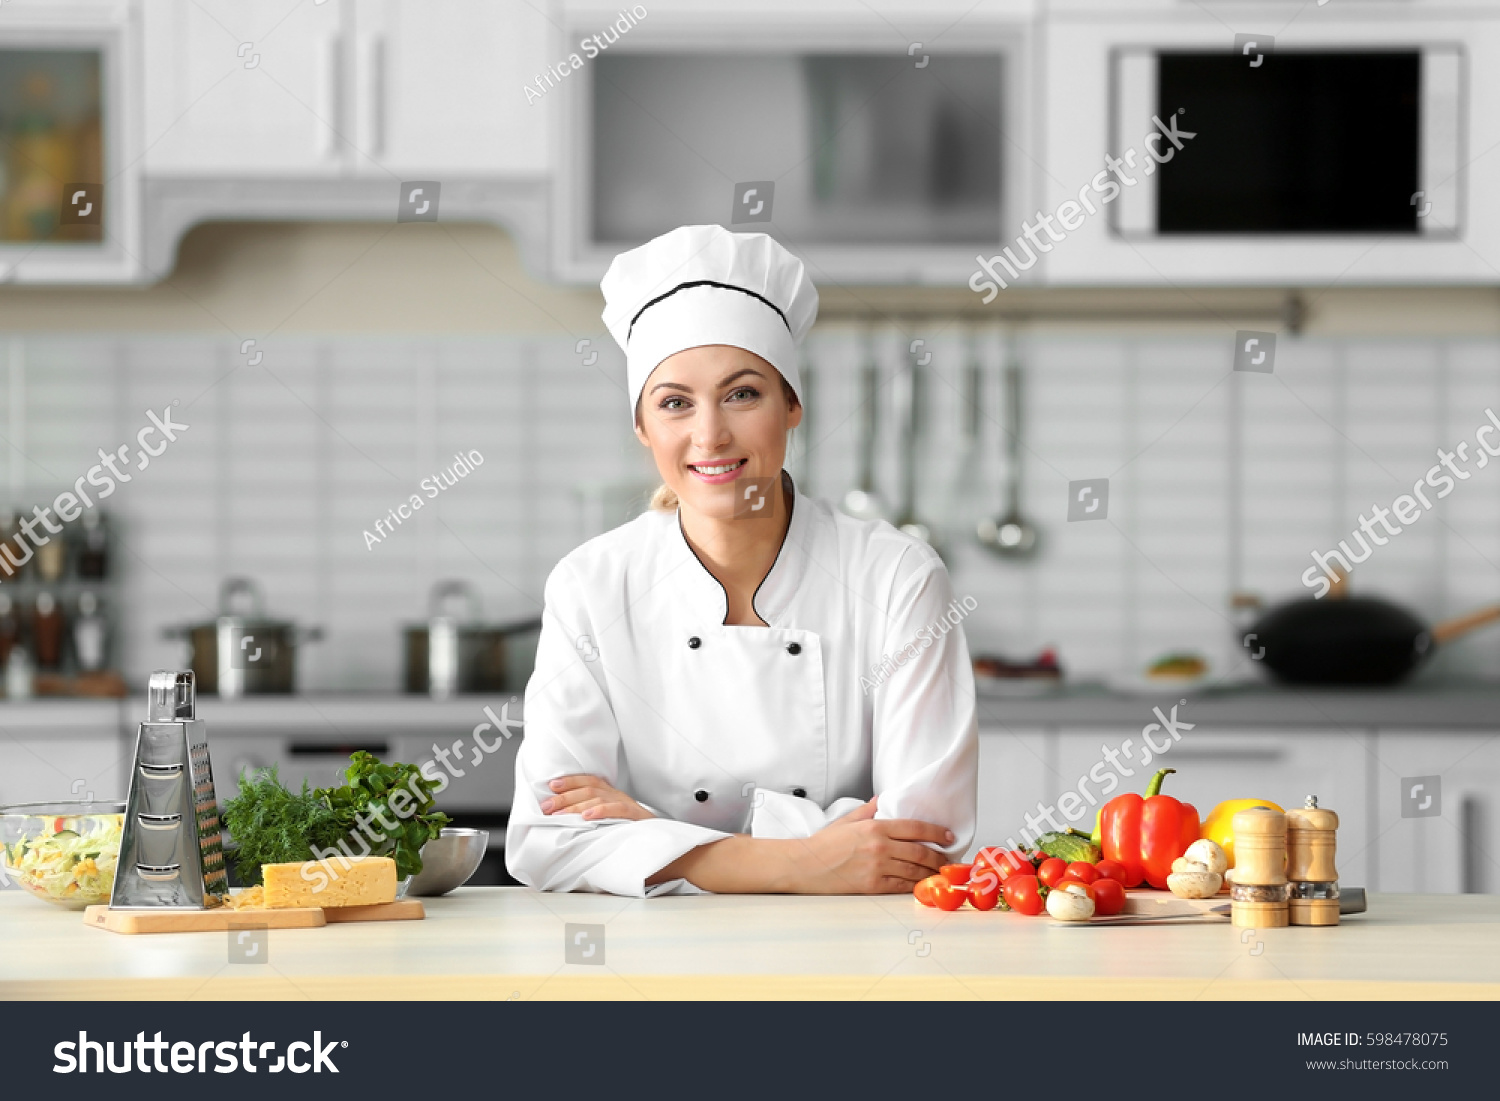 Portrait Young Female Chef Kitchen Stock Photo & Image (Royalty-Free ...